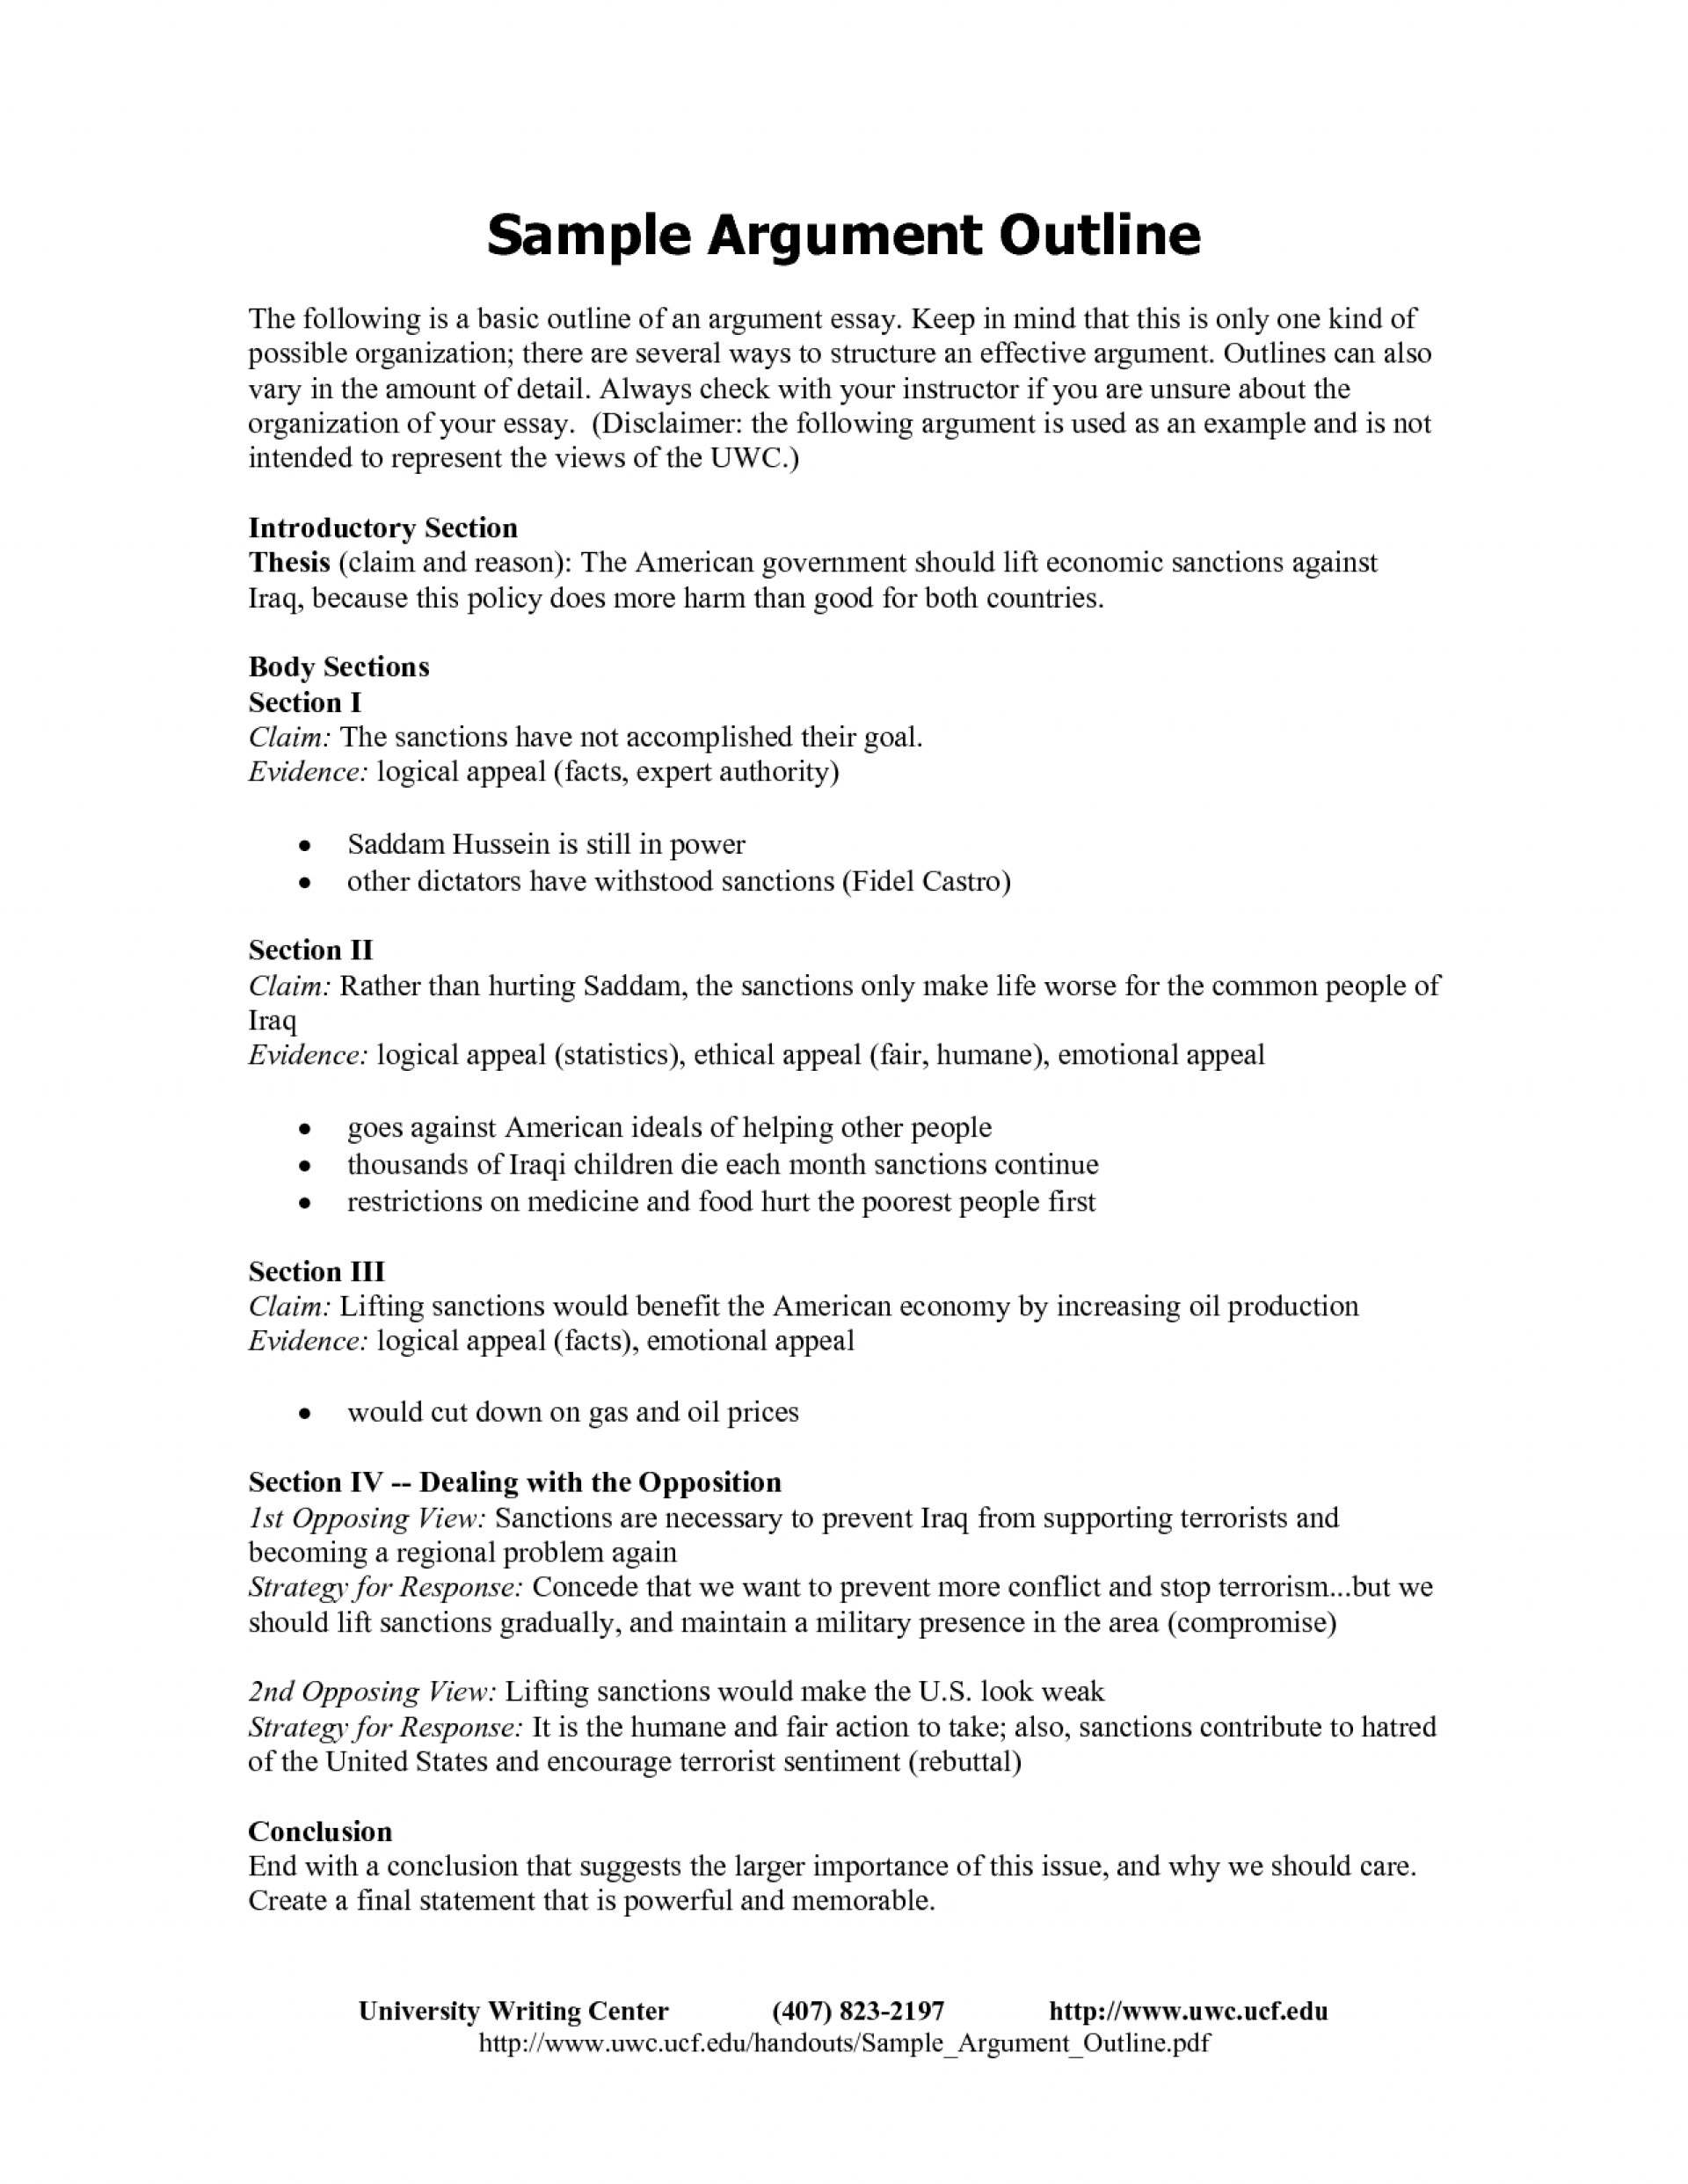 003 Argument Essay Outline Format Research An